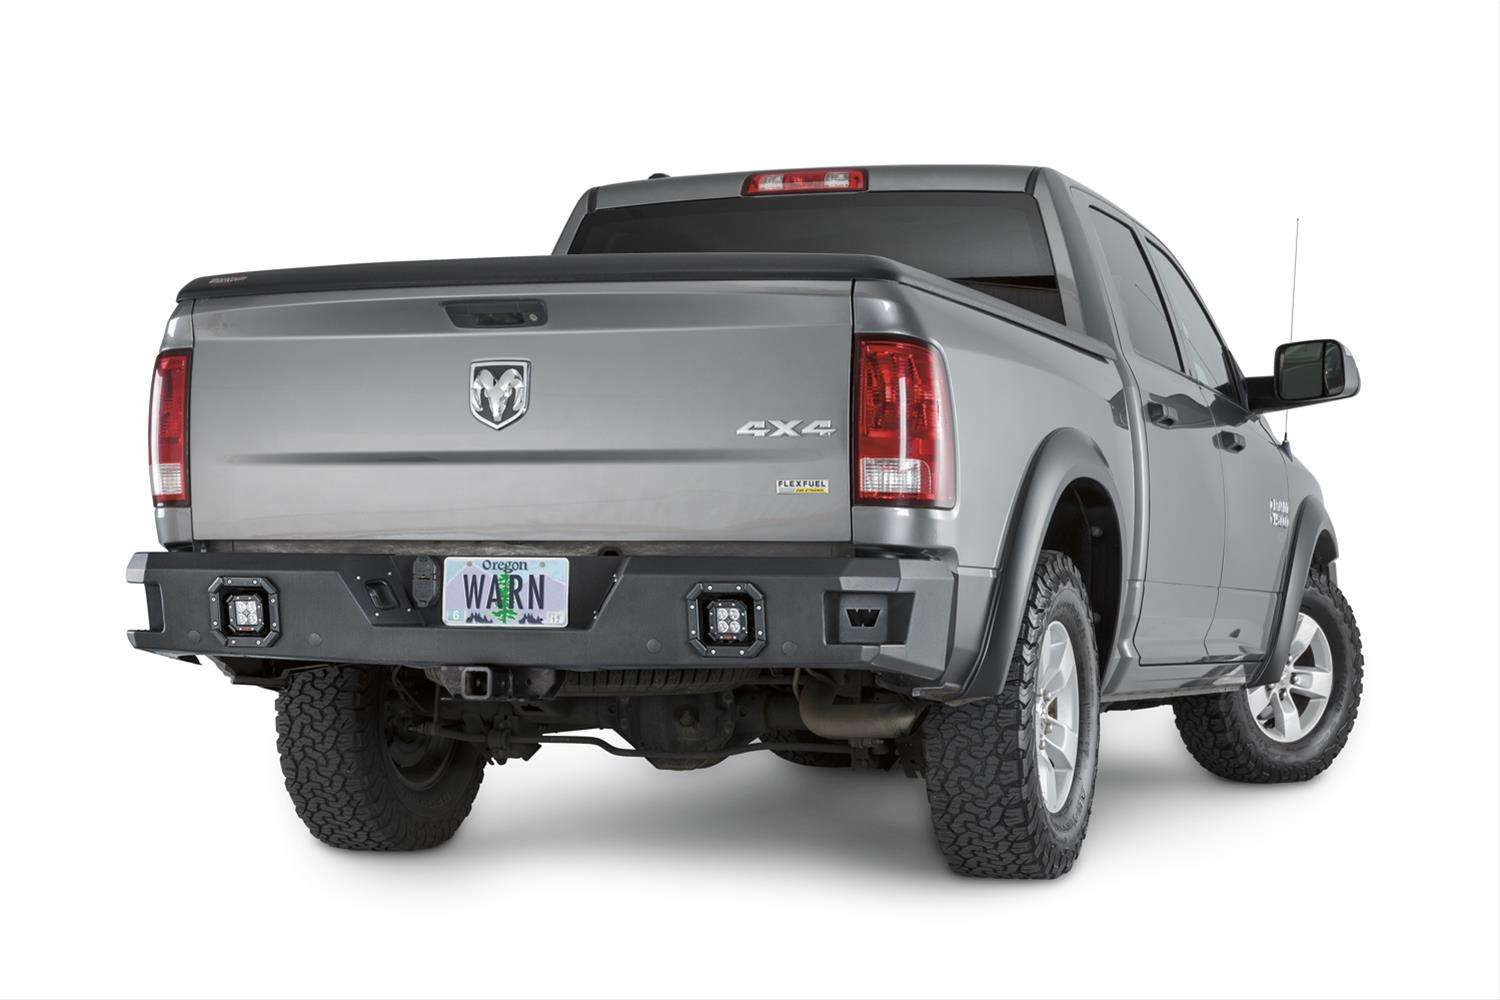 Warn Ascent Rear Truck Bumper 2009-18 Dodge Ram